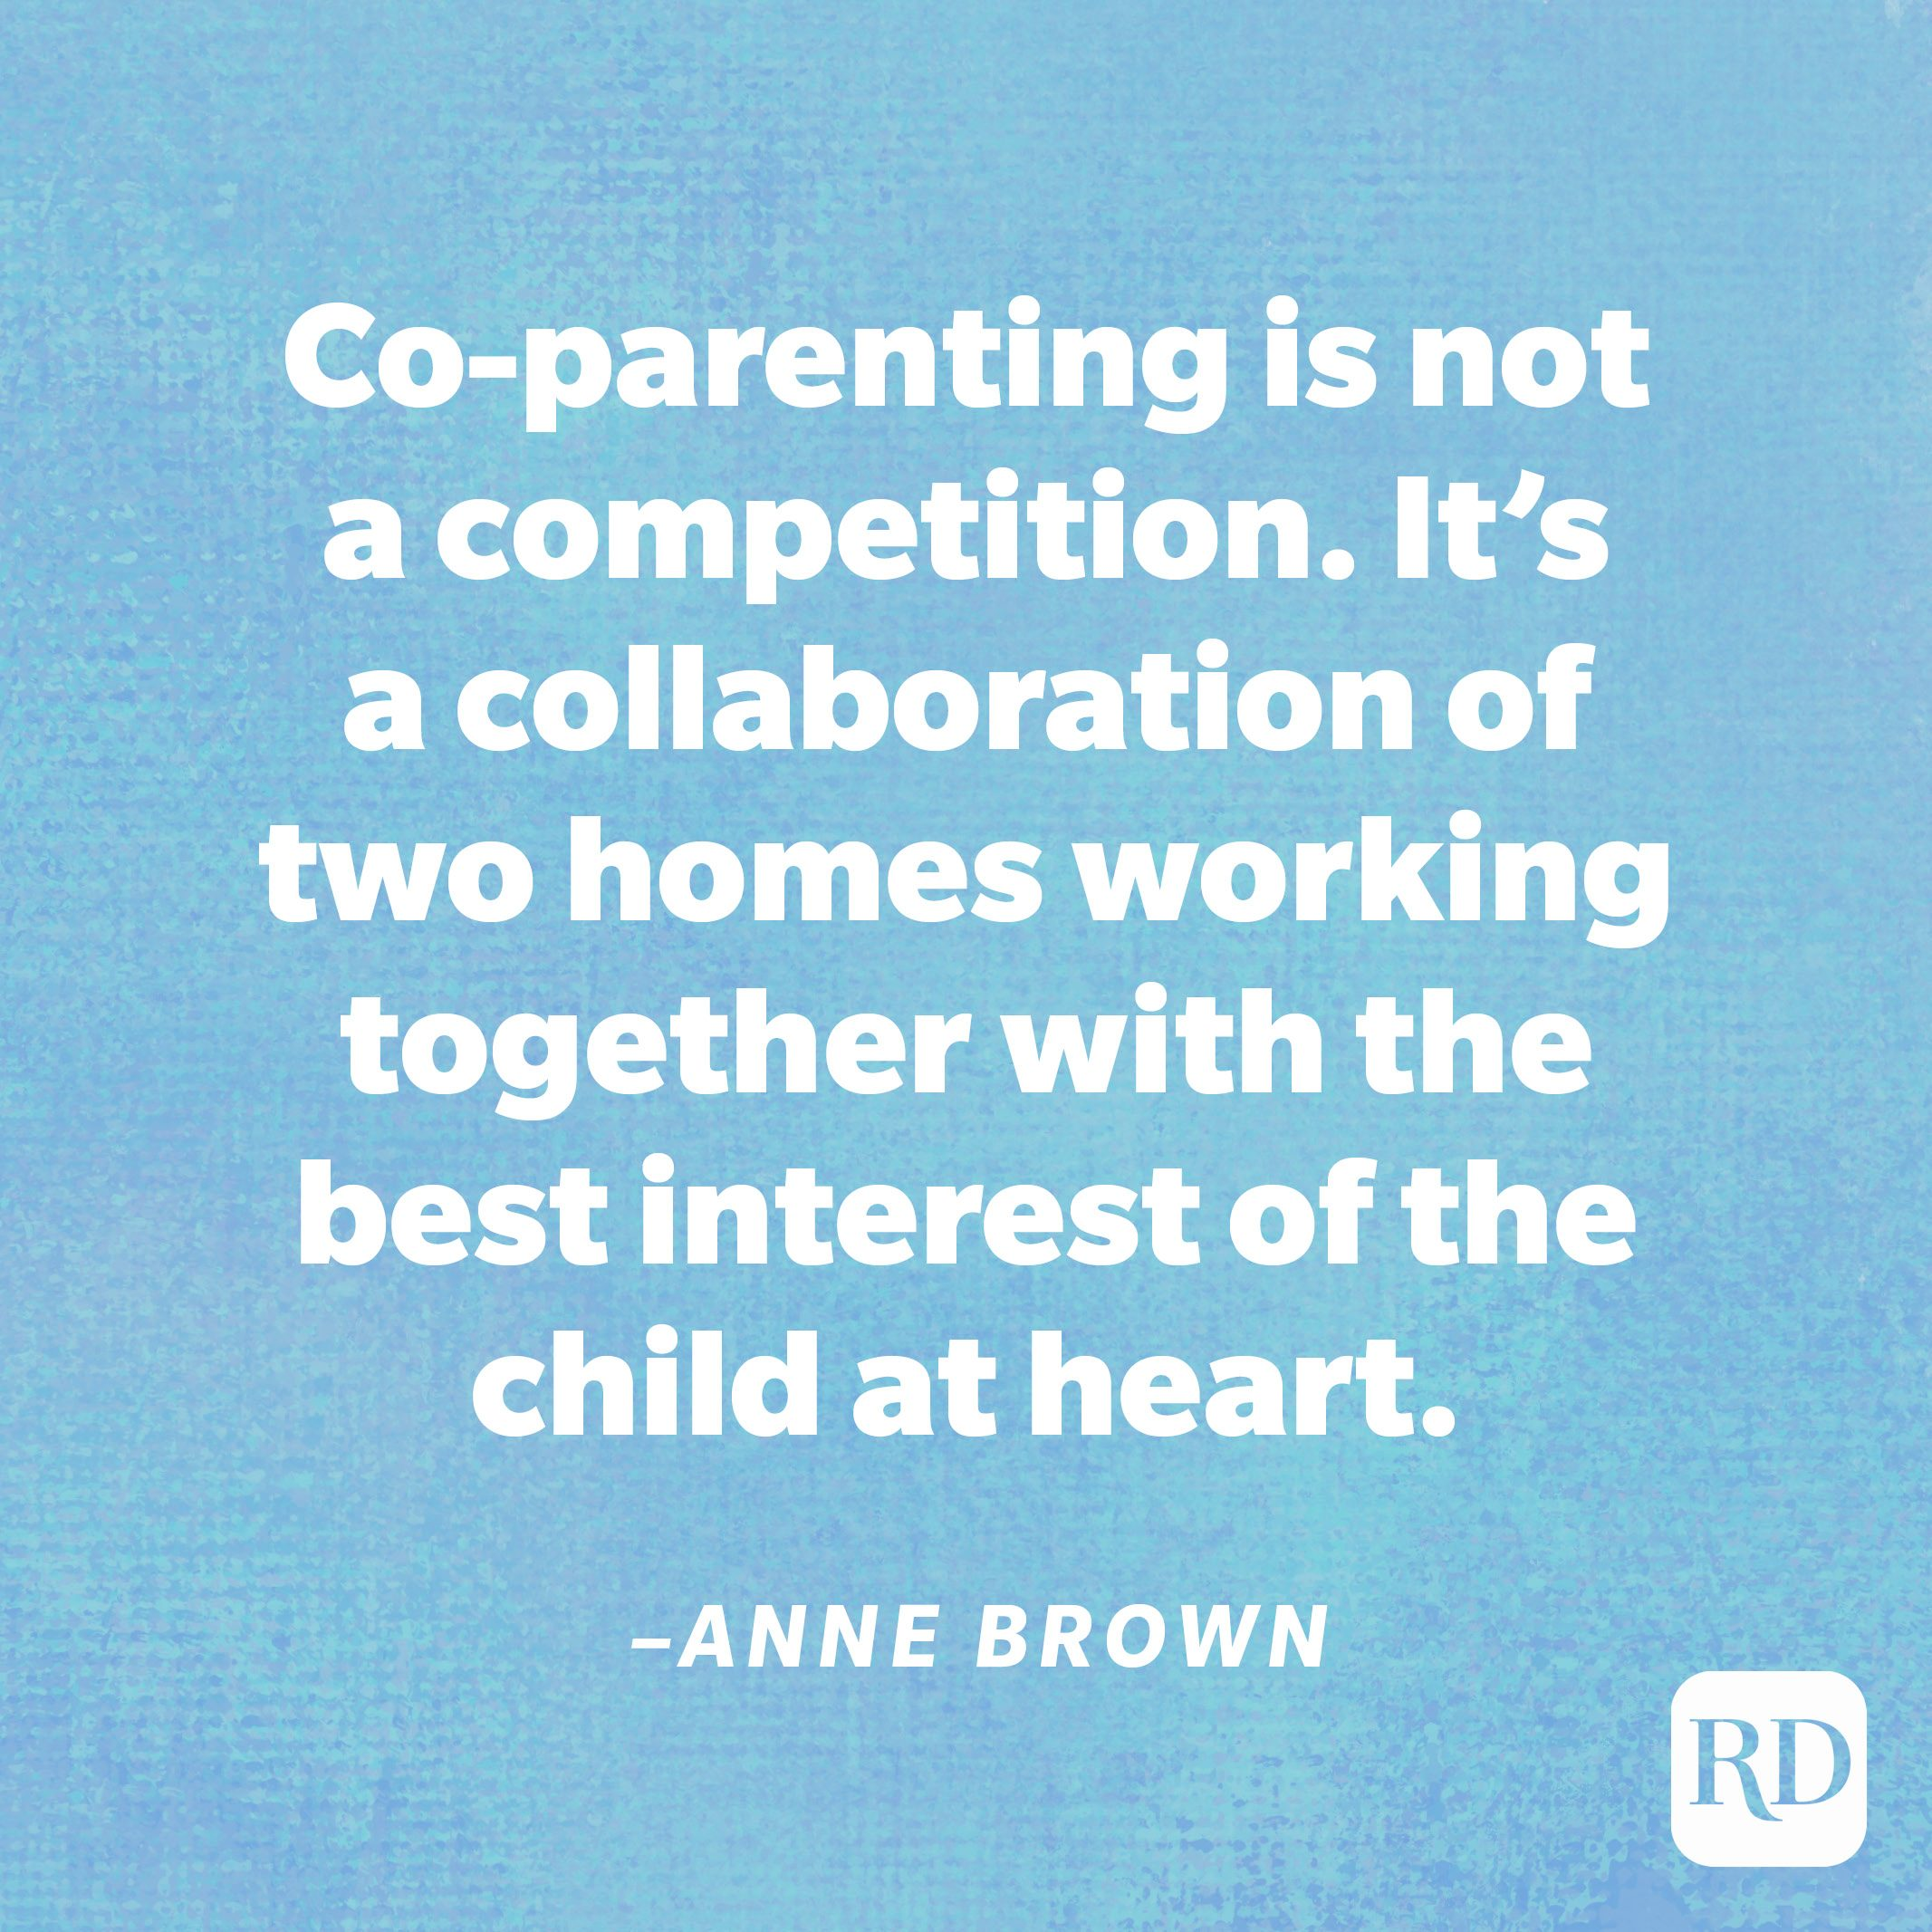 """""""Co-parenting is not a competition. It's a collaboration of two homes working together with the best interest of the child at heart. Work for your kids not against them.""""—Anne Brown"""